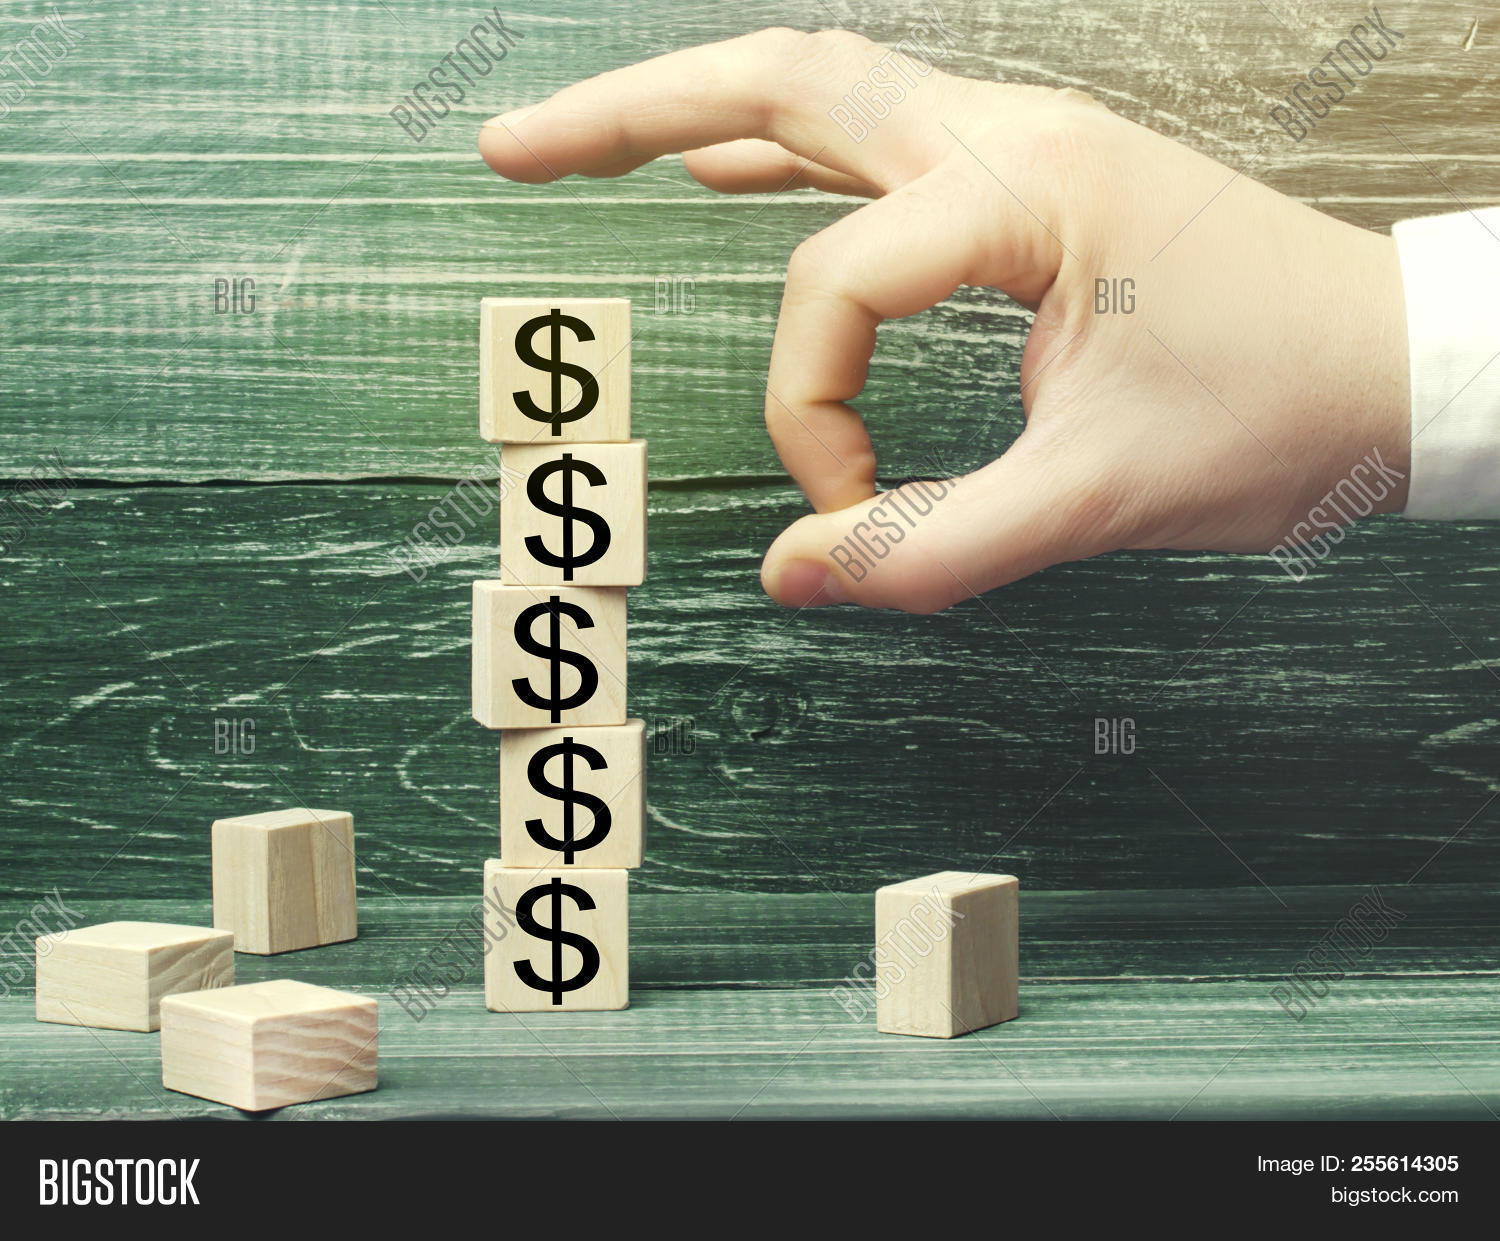 arrow,background,bankruptcy,broke,business,businessman,capital,cash,chart,concept,crash,crisis,currency,depression,diagram,dollar,down,downward,economic,economy,falling,finance,financial,graph,interest,line,losing,loss,low,man,market,money,outflow,panic,person,pressure,prices,profit,sabotage,showing,sign,small,stock,symbol,unsuccessful